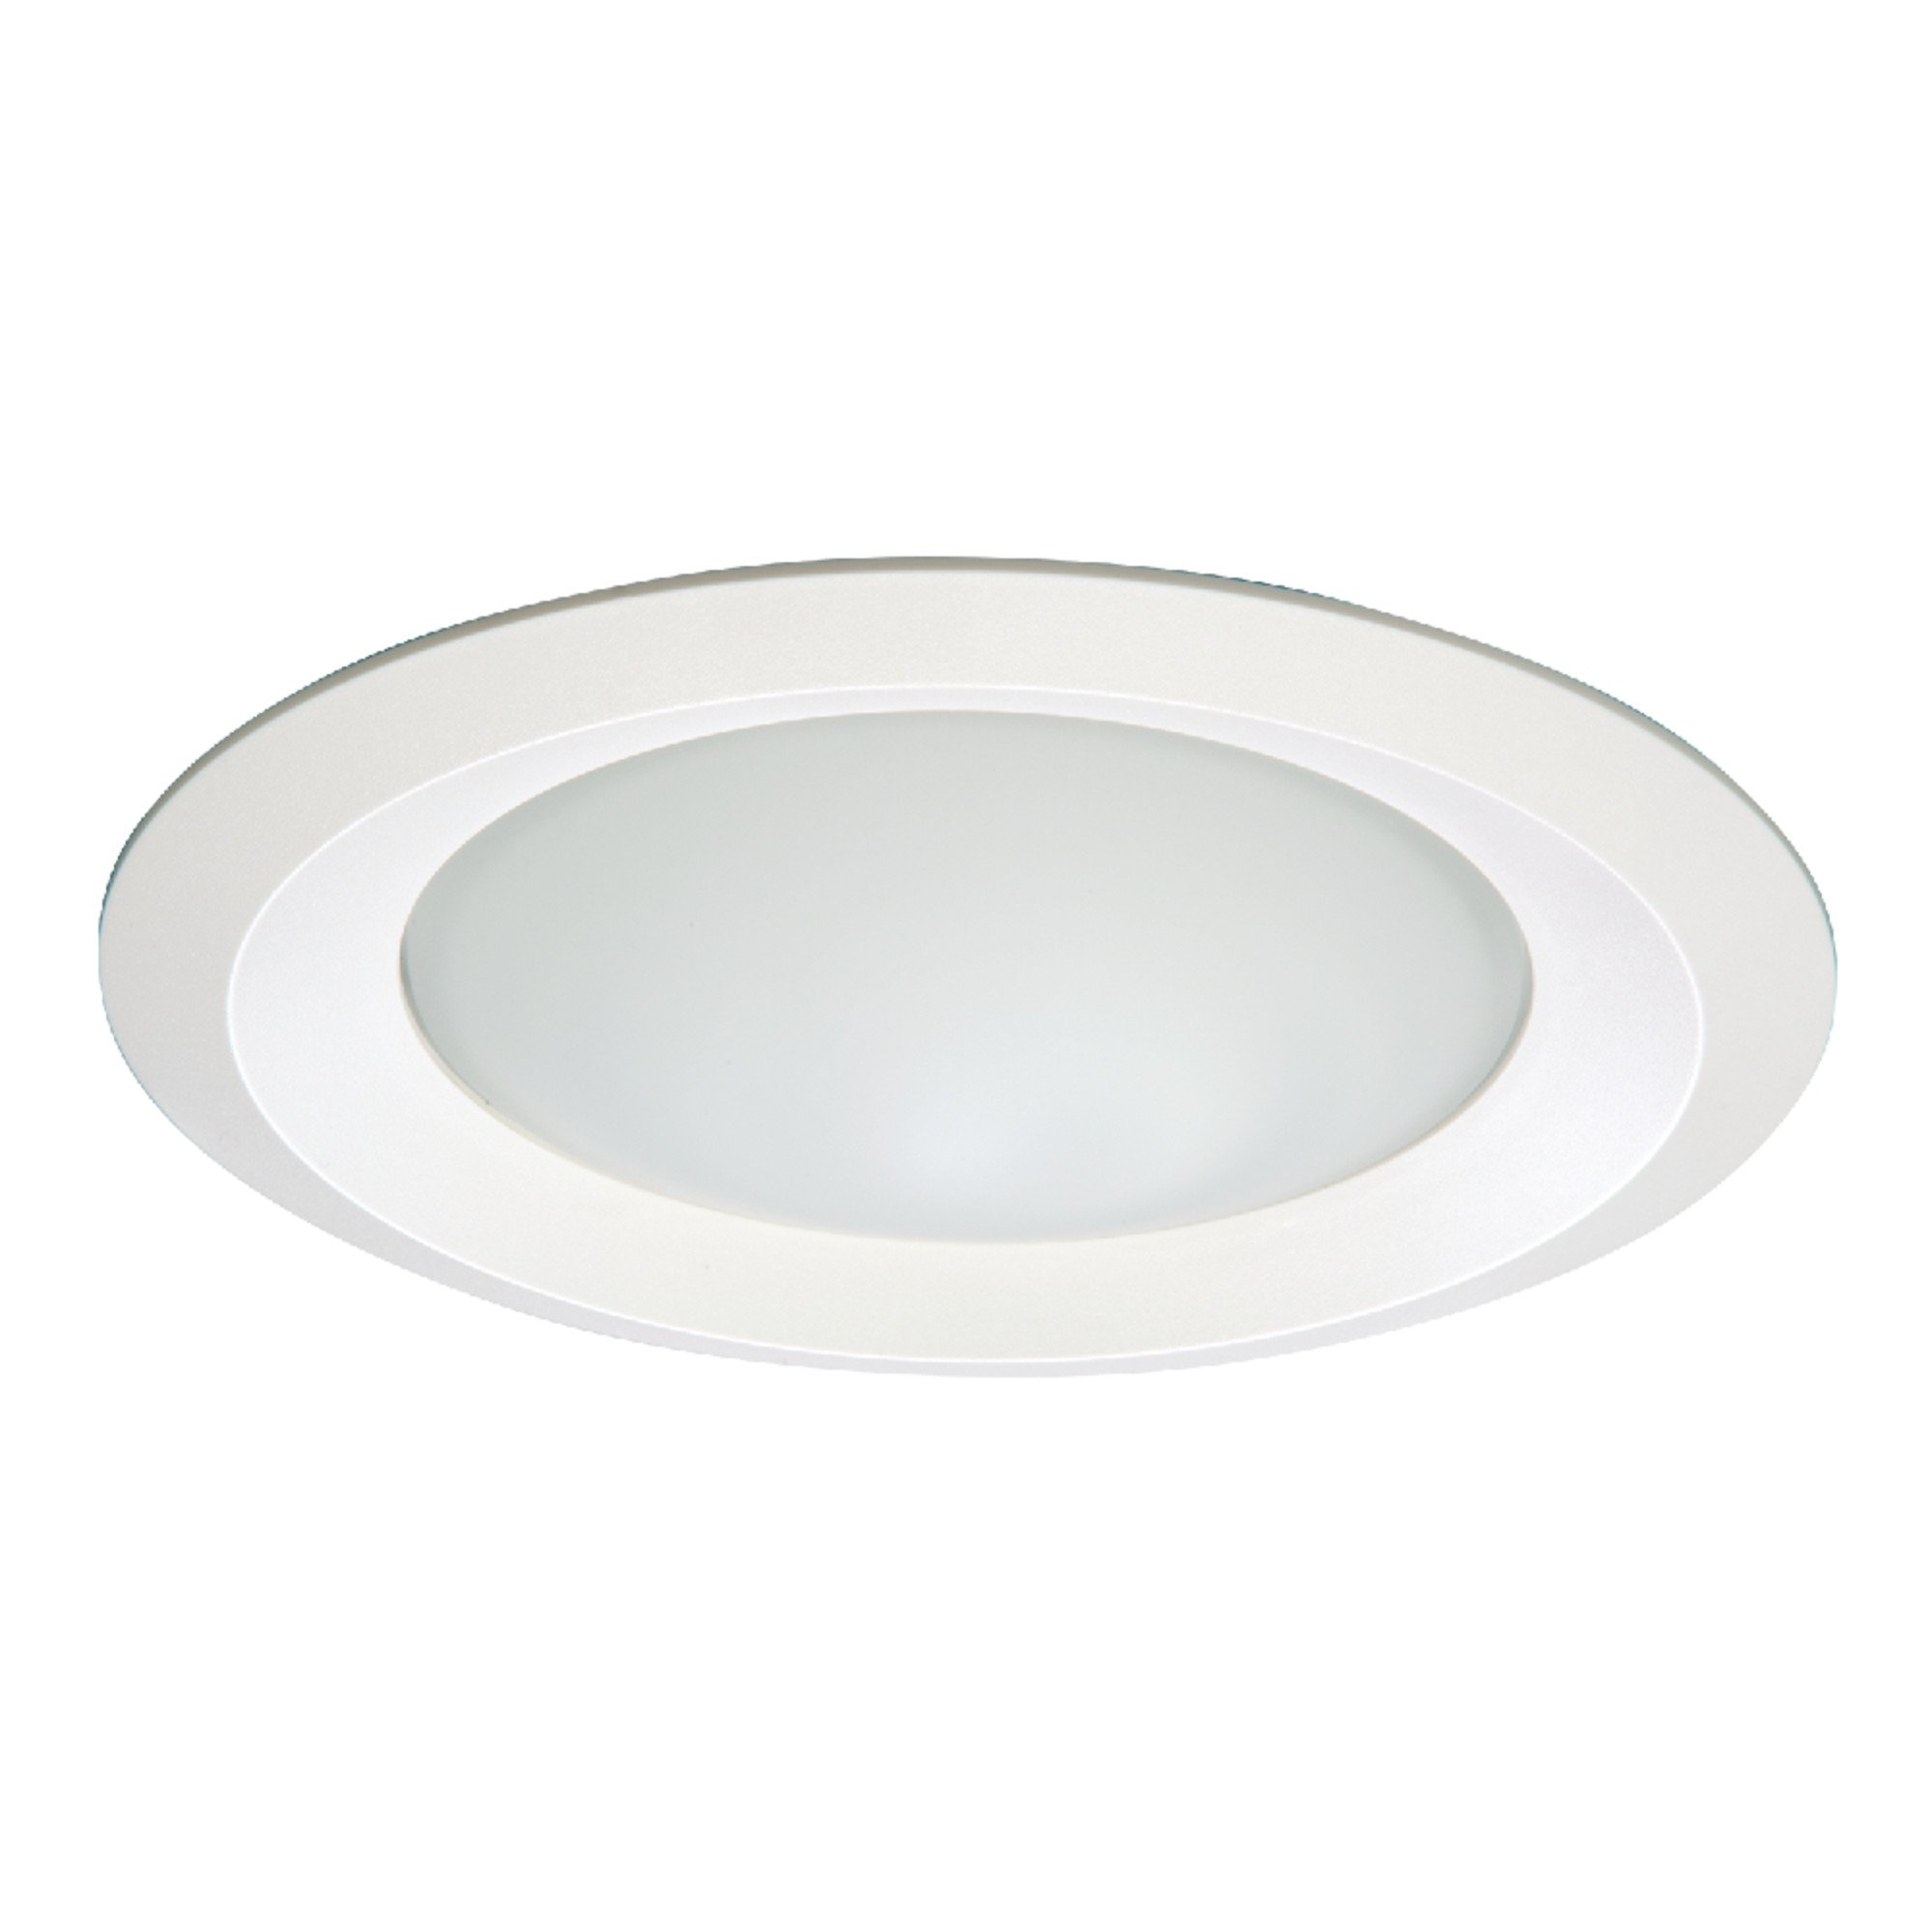 Halo RE-6150WH 6150WH E26 Series Recessed Shower Light with Frosted Glass Lens, 6'', White